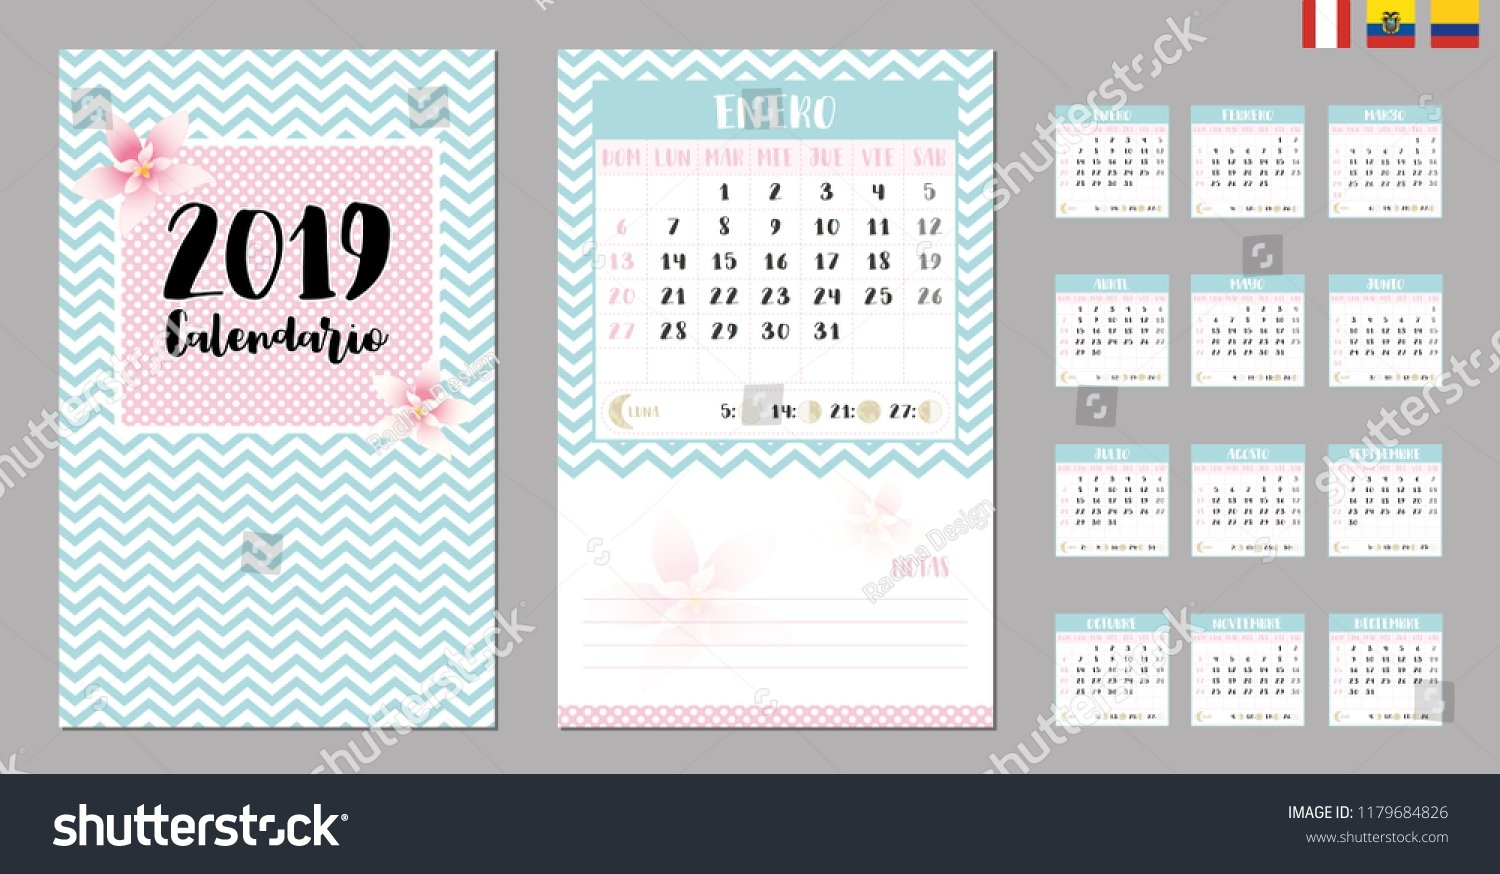 2019 Calendar Moon Phases Suitable Colombia Stock Vector (Royalty Calendar 2019 Colombia